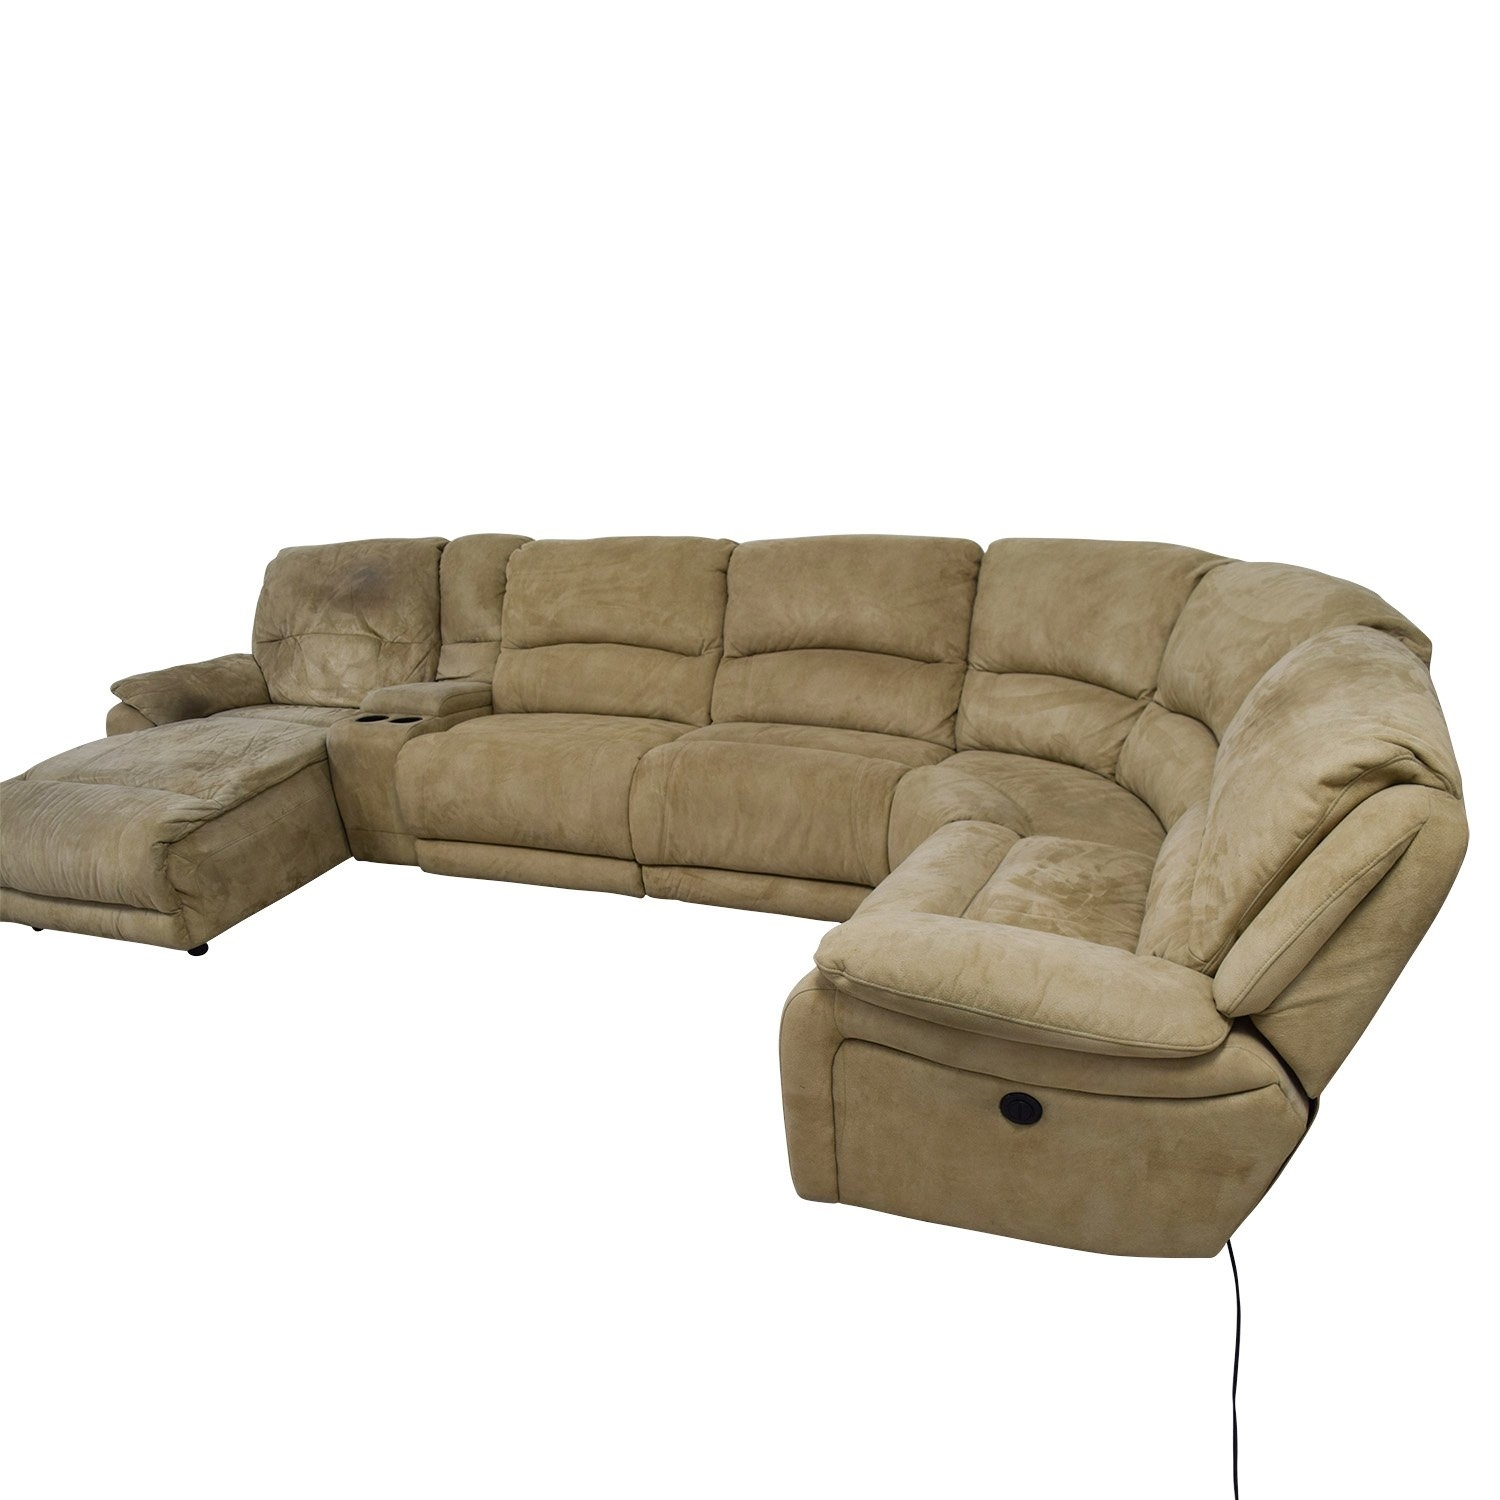 Fabulous 25 Power Reclining Sectional Sofa Favorite In Calder Grey 6 Piece Manual Reclining Sectionals (Image 9 of 25)